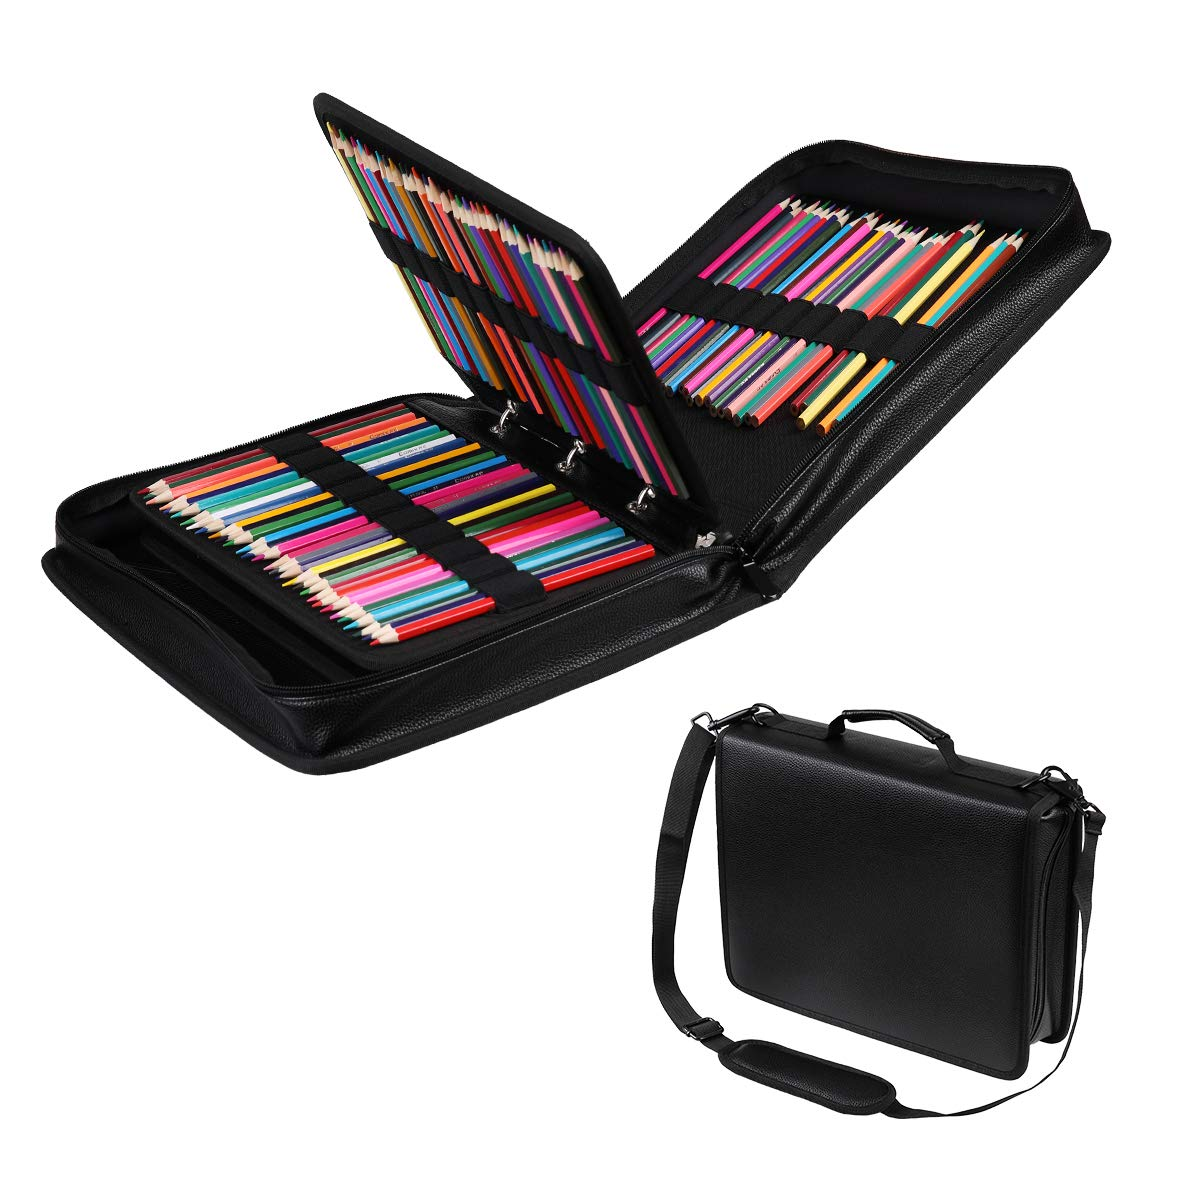 210 Slots Colored Pencil Case PU Leather Pencil Holder Large Capacity Pen Bag Marker Carrying Case for Prismacolor, Watercolor Pencils, Colored Pencils, Gel Pens, Cosmetic Brush Organizer (Black)